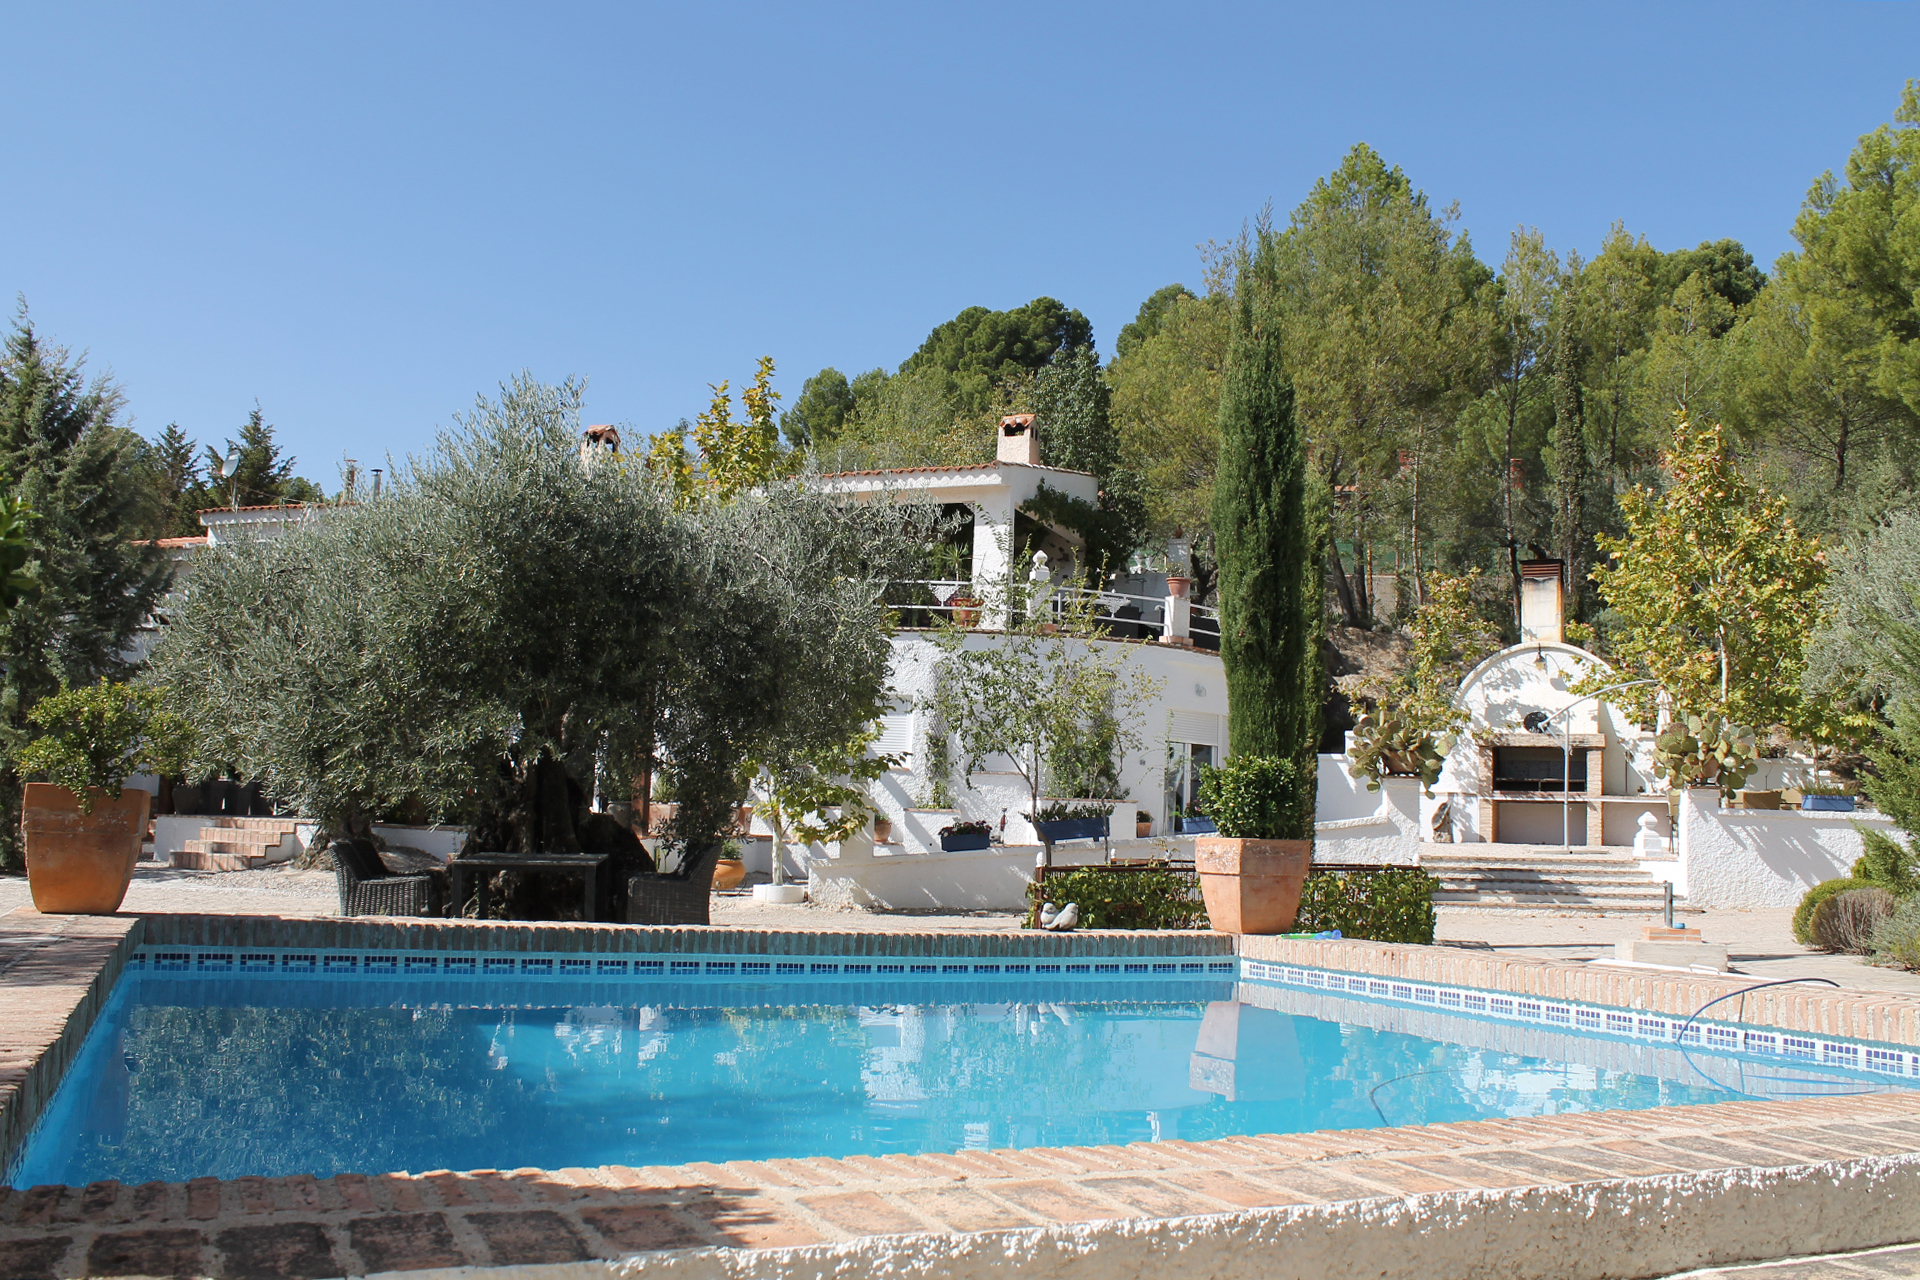 Los Mofletes is located in an ancient olive yard, where you can relax, cool down in the pool or just enjoy the beautiful garden and its tranquility.